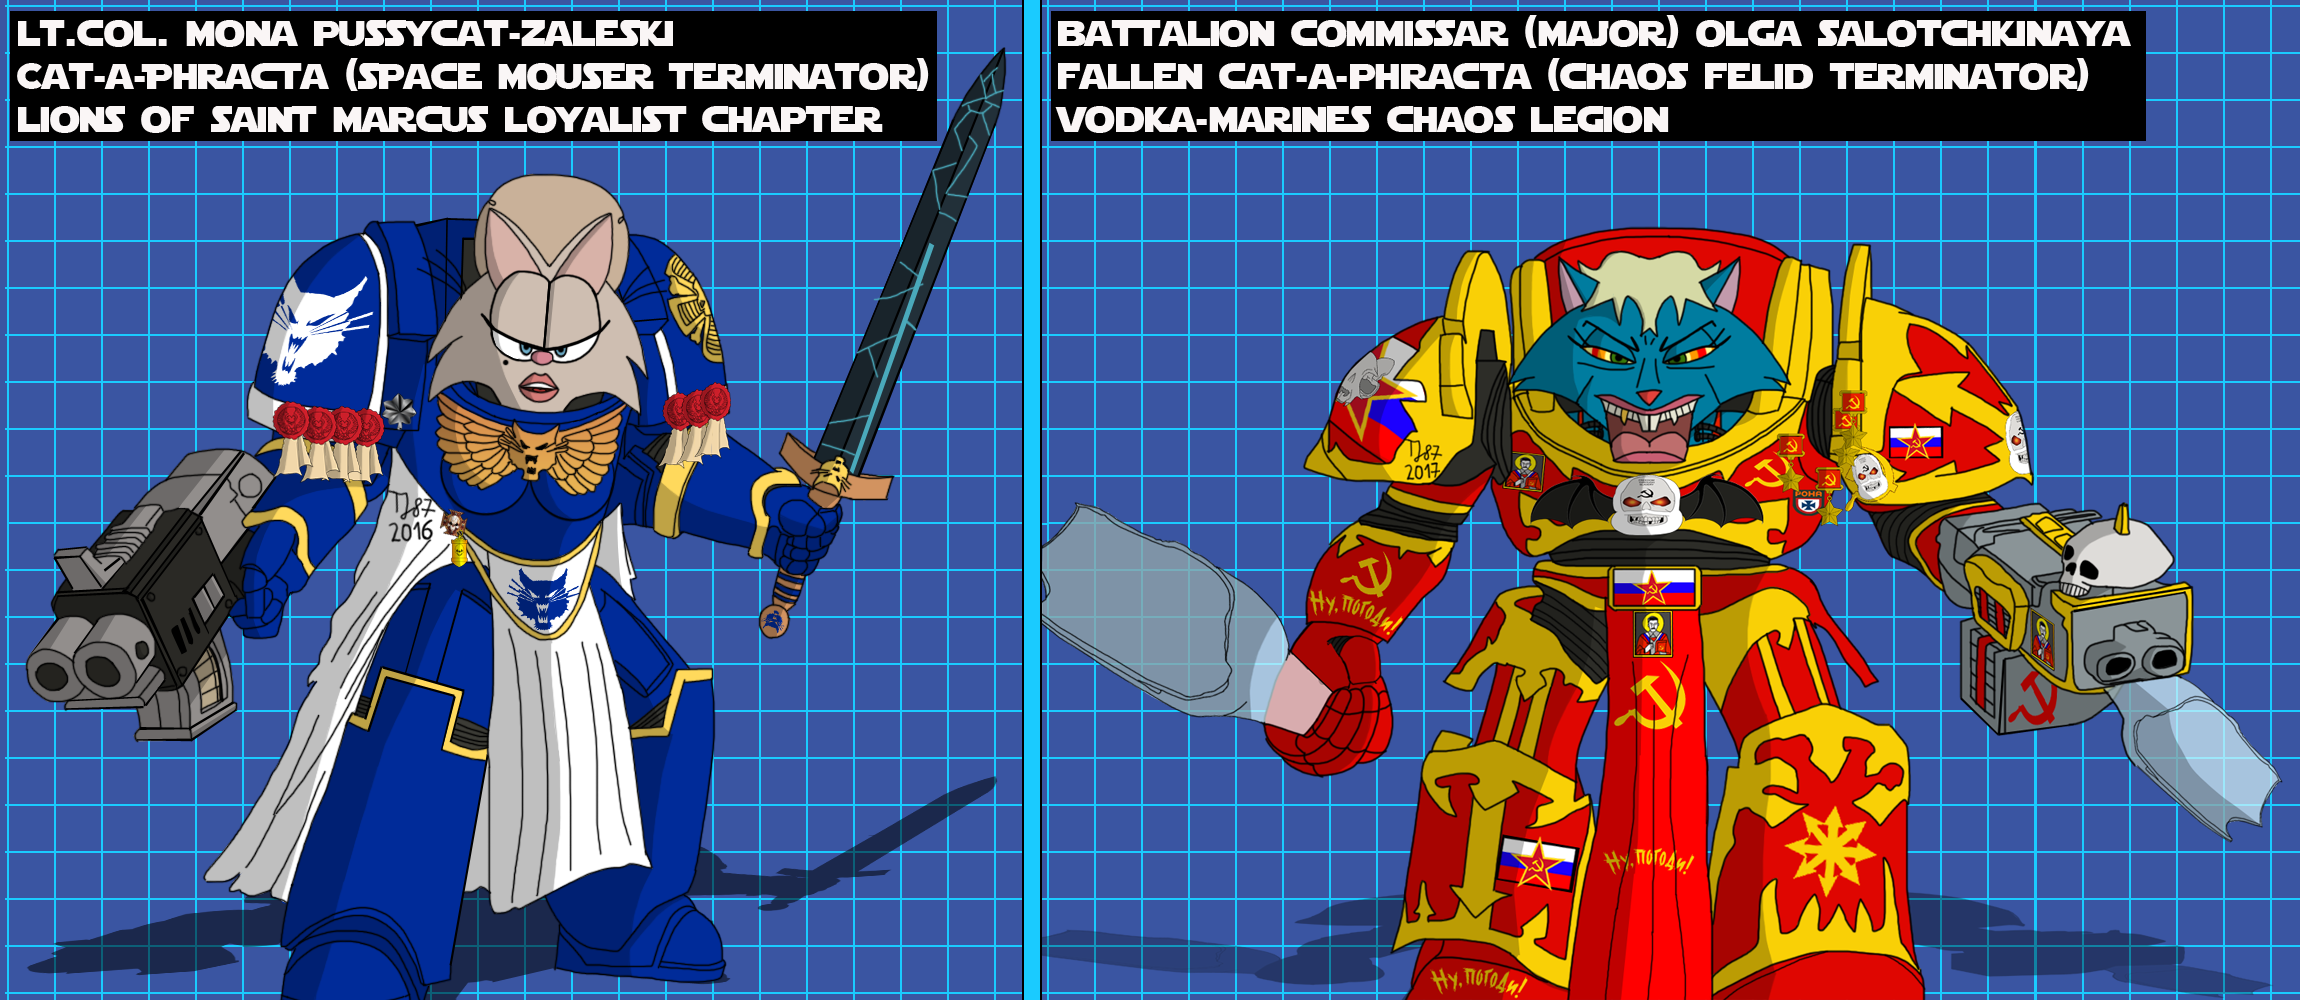 Space Mouser: Terminator Comparison by TeeJay87